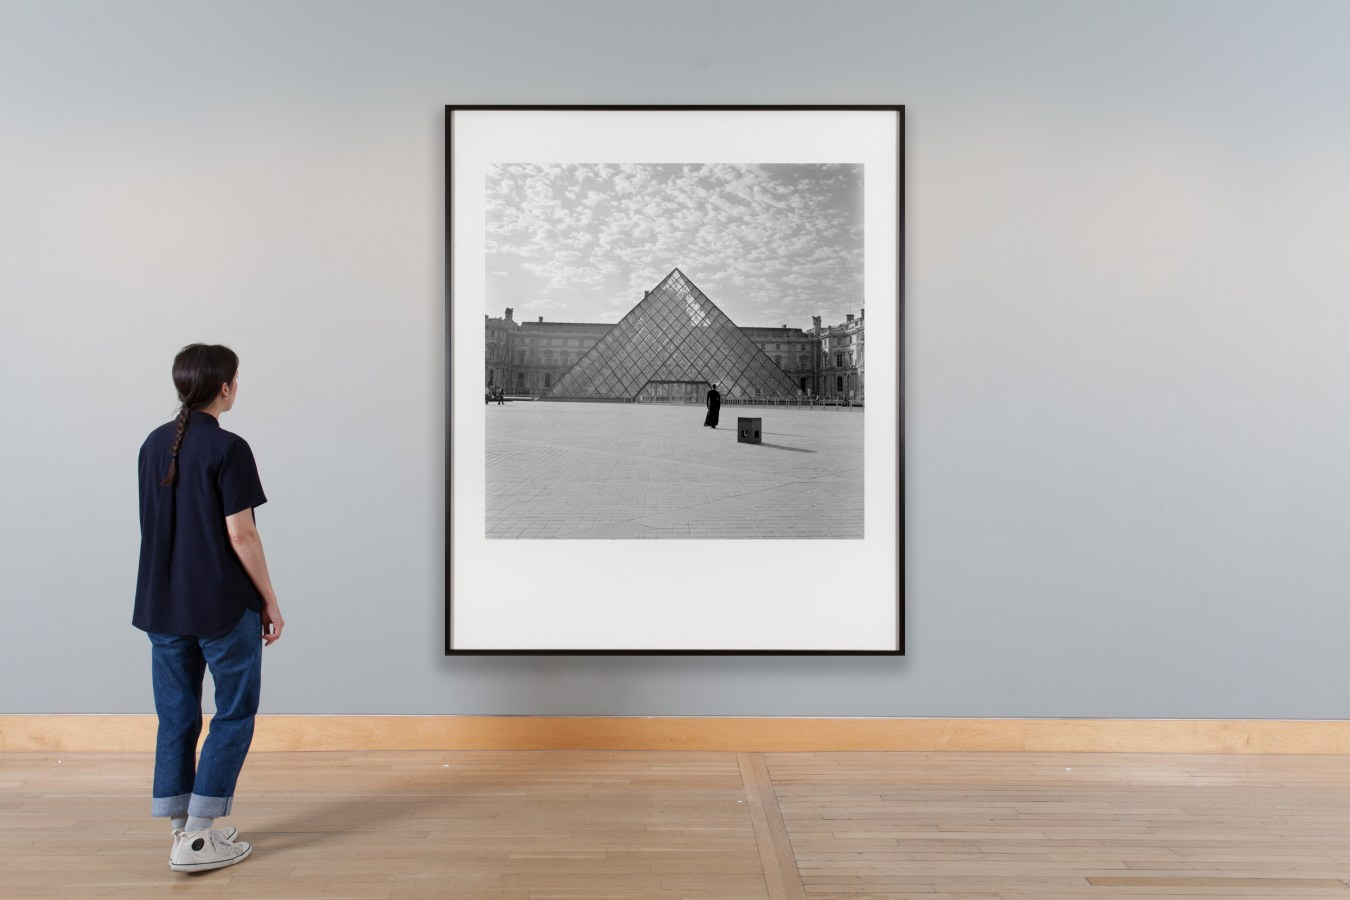 Installation photograph of a black and white image of a woman standing in front of a glass pyramid in a museum courtyard